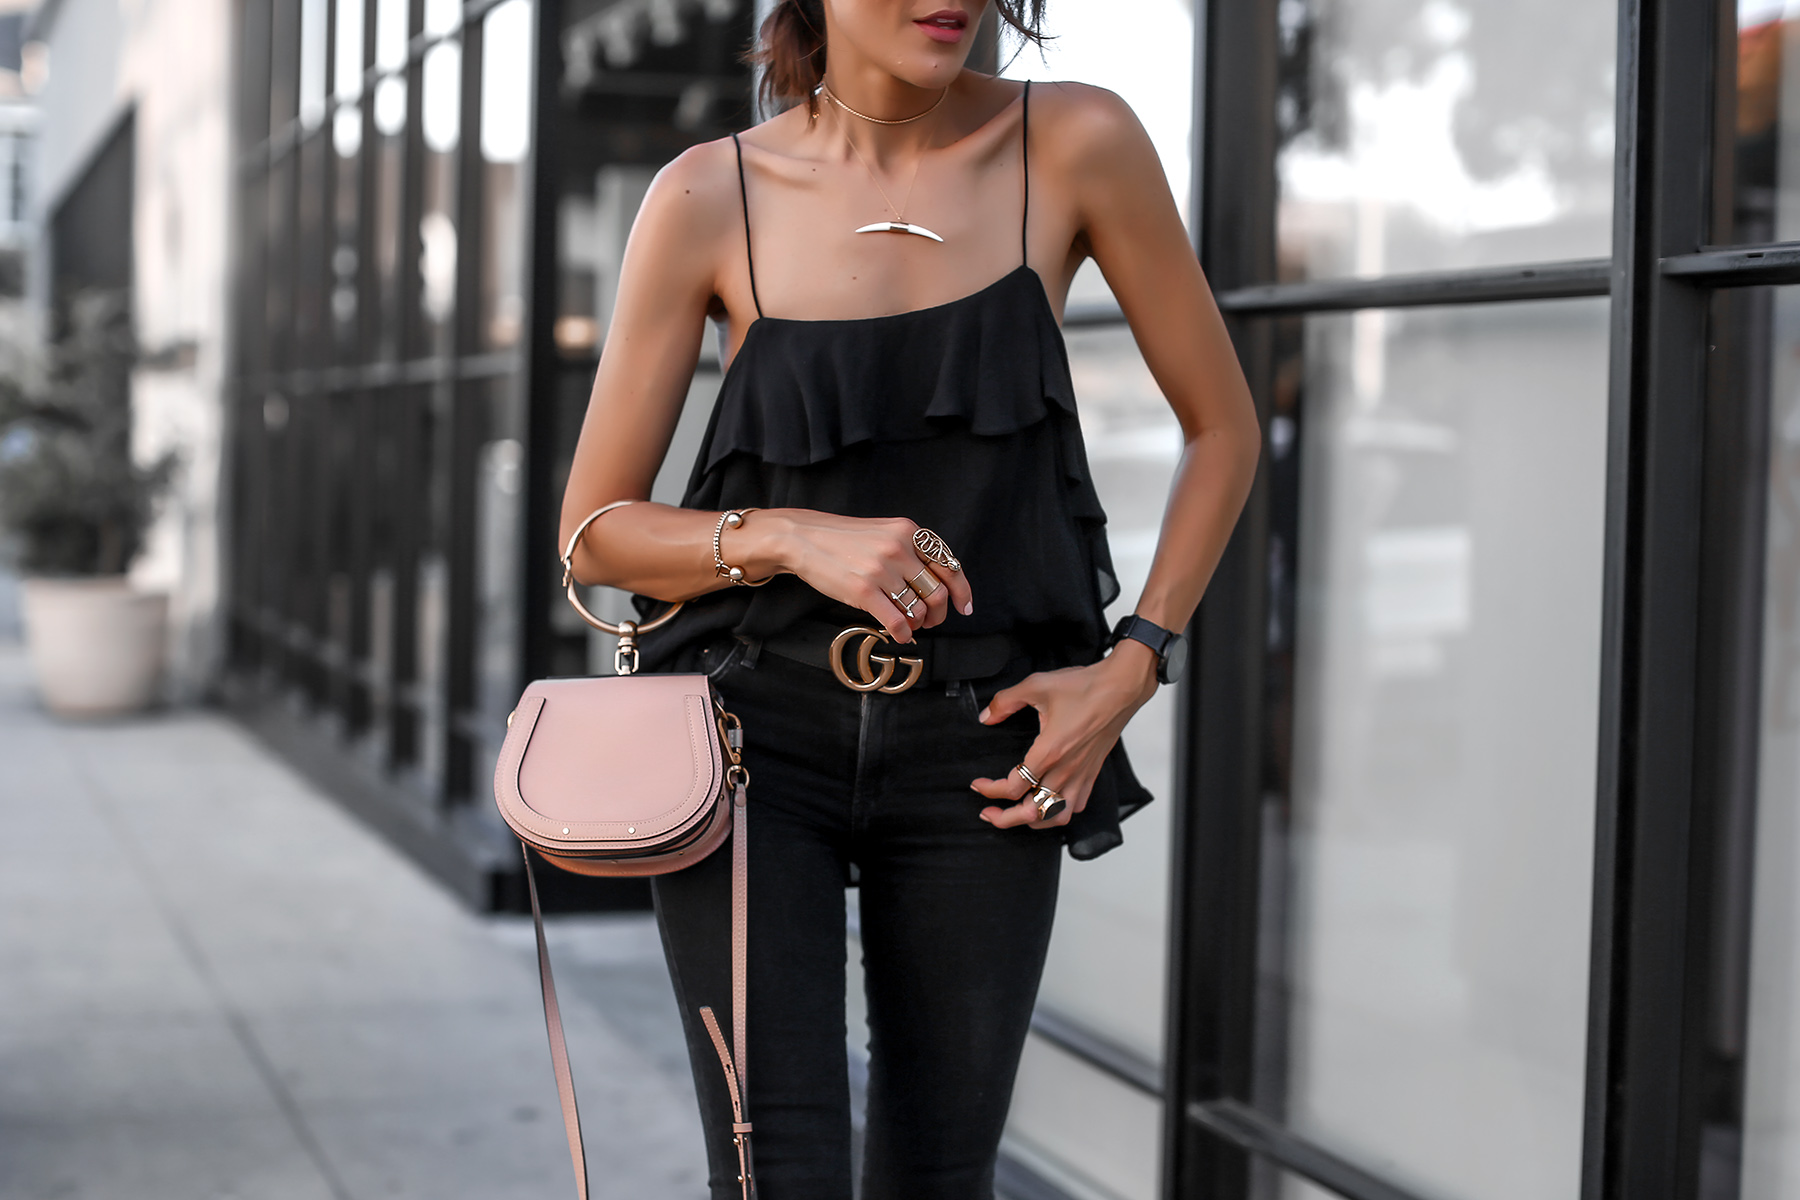 Ruffle cami and black jeans with chloe nile bag.jpg